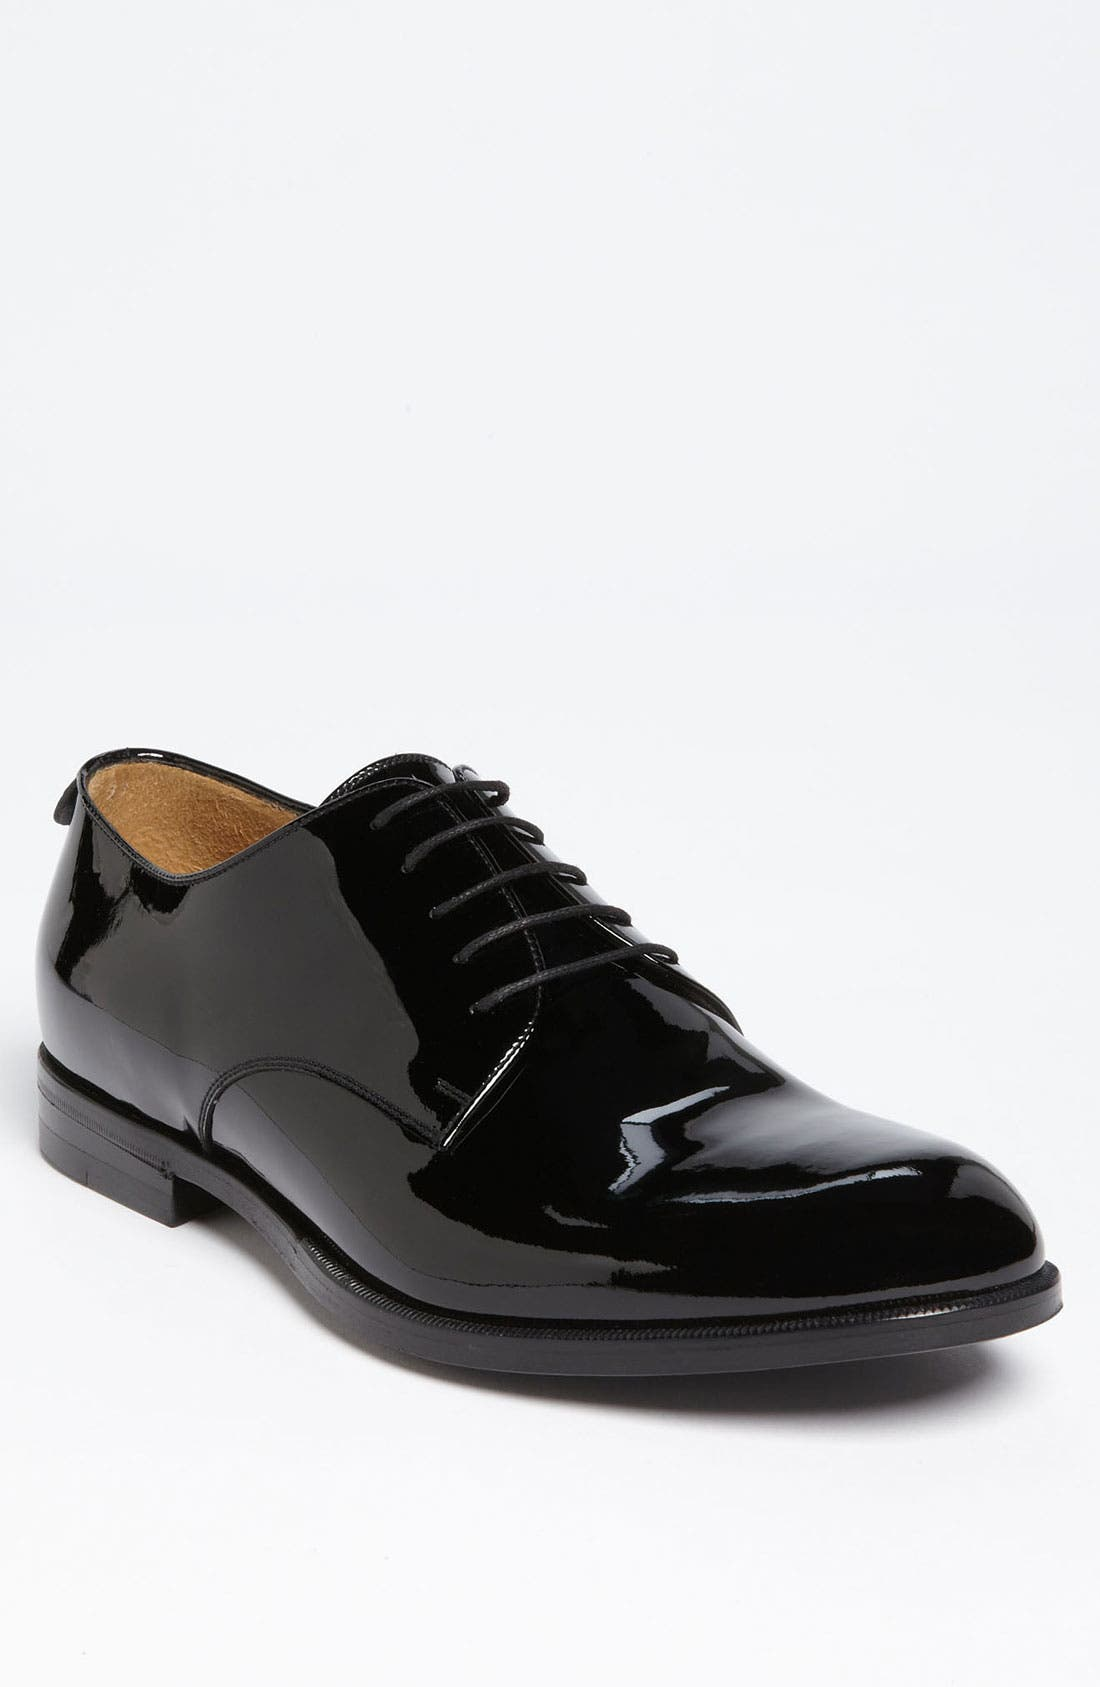 Alternate Image 1 Selected - Gucci 'Clerck' Patent Derby